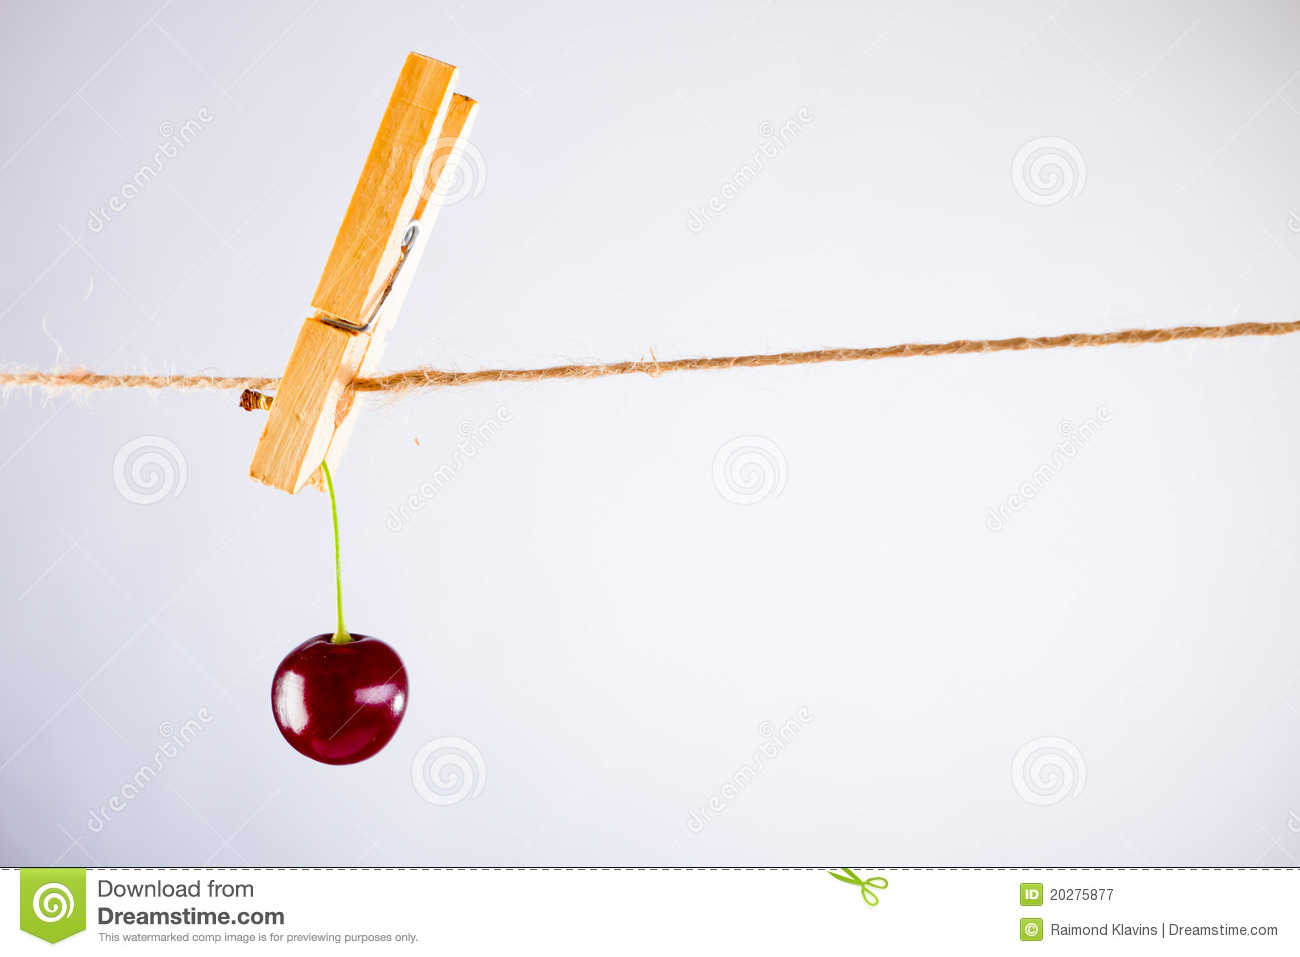 Cherry and rope on white with clamp